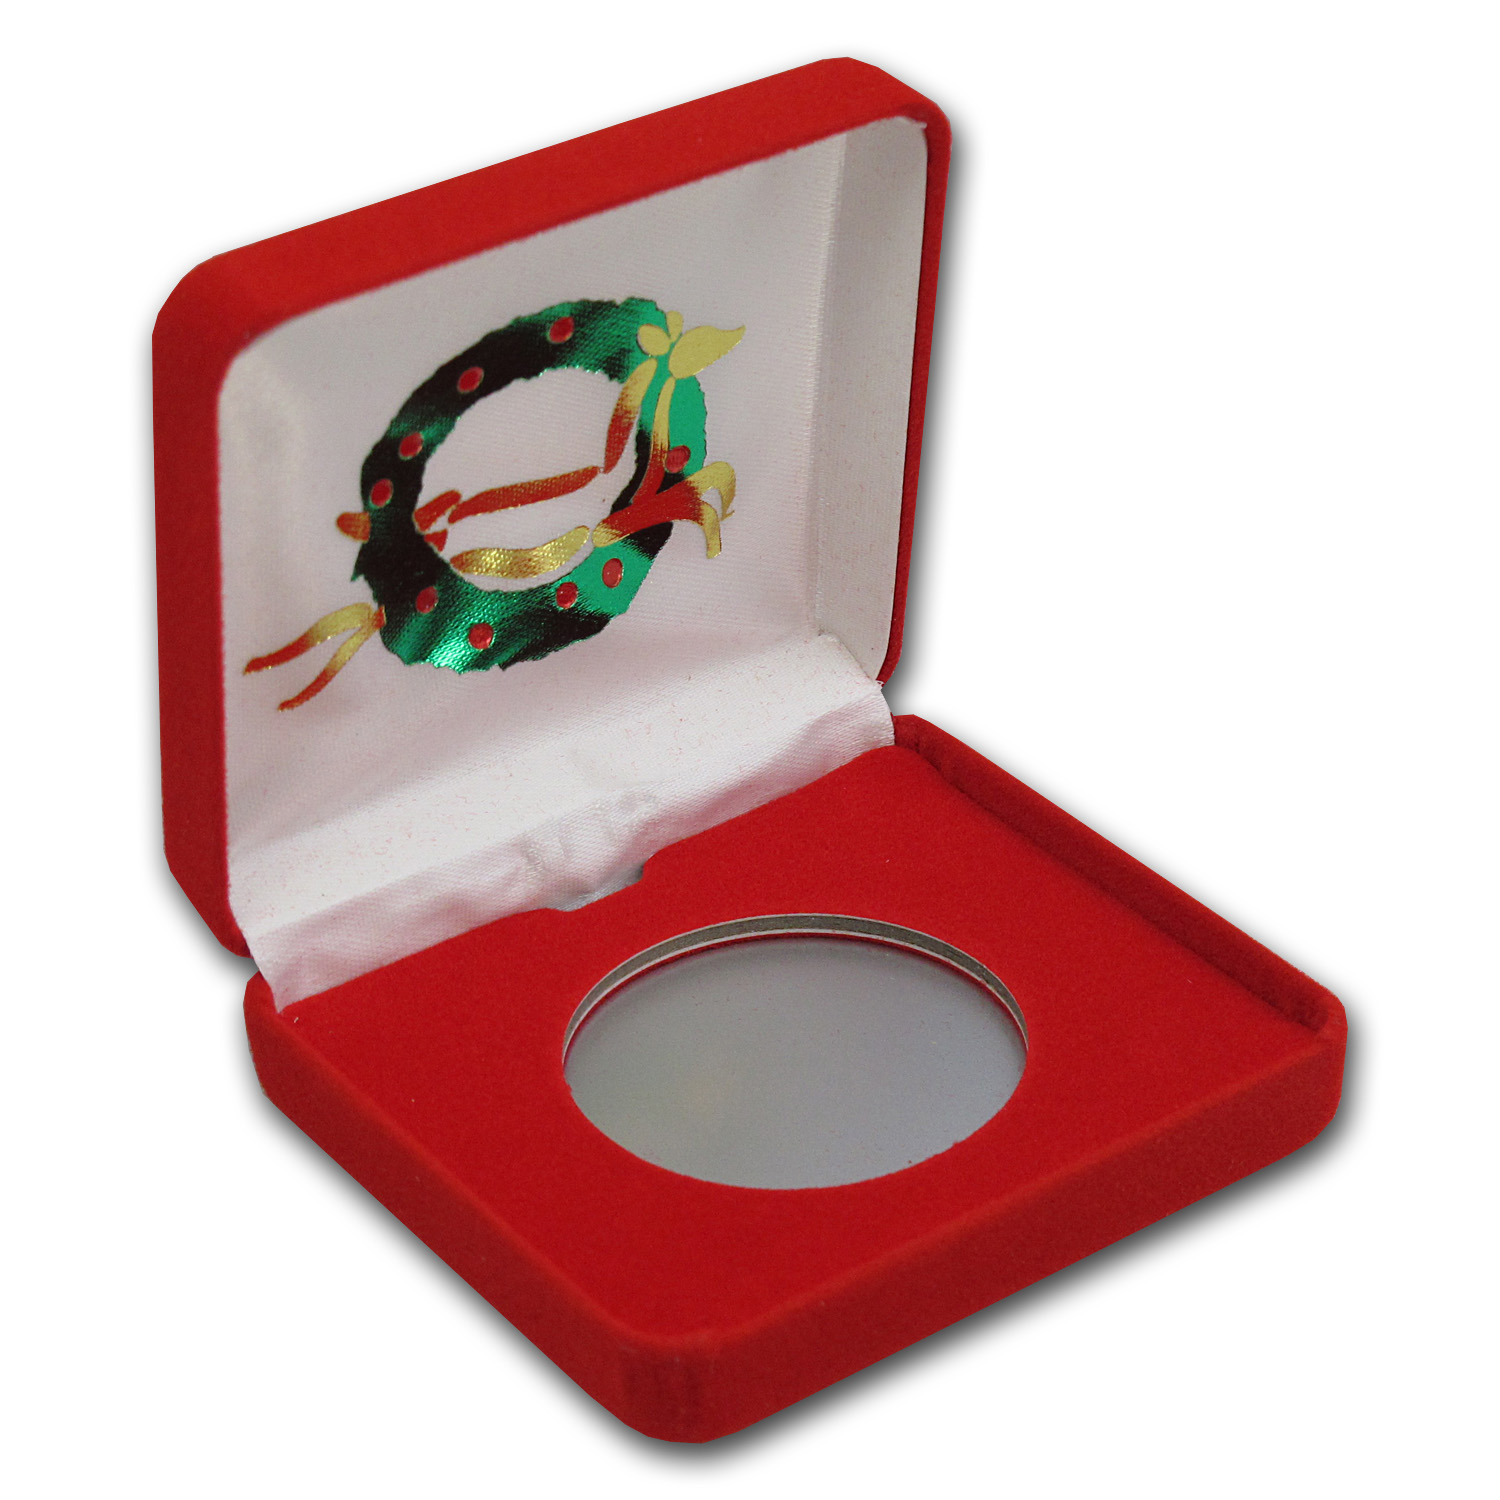 Red Velour Gift Box for Silver Rounds - Reindeer Wreath